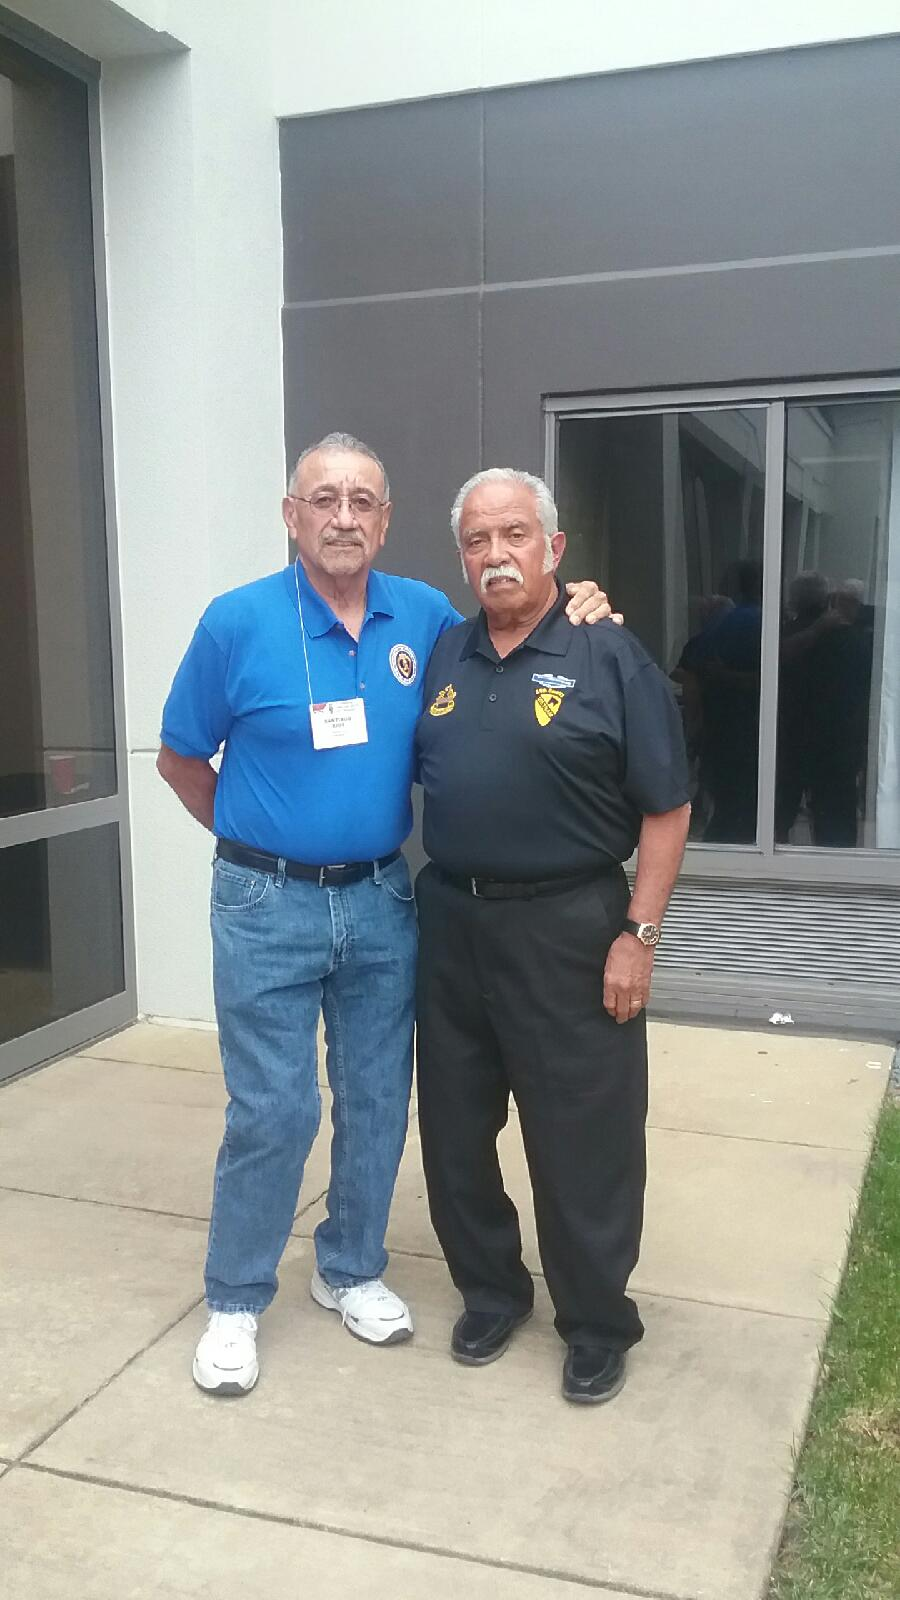 Chaug and old Sarge